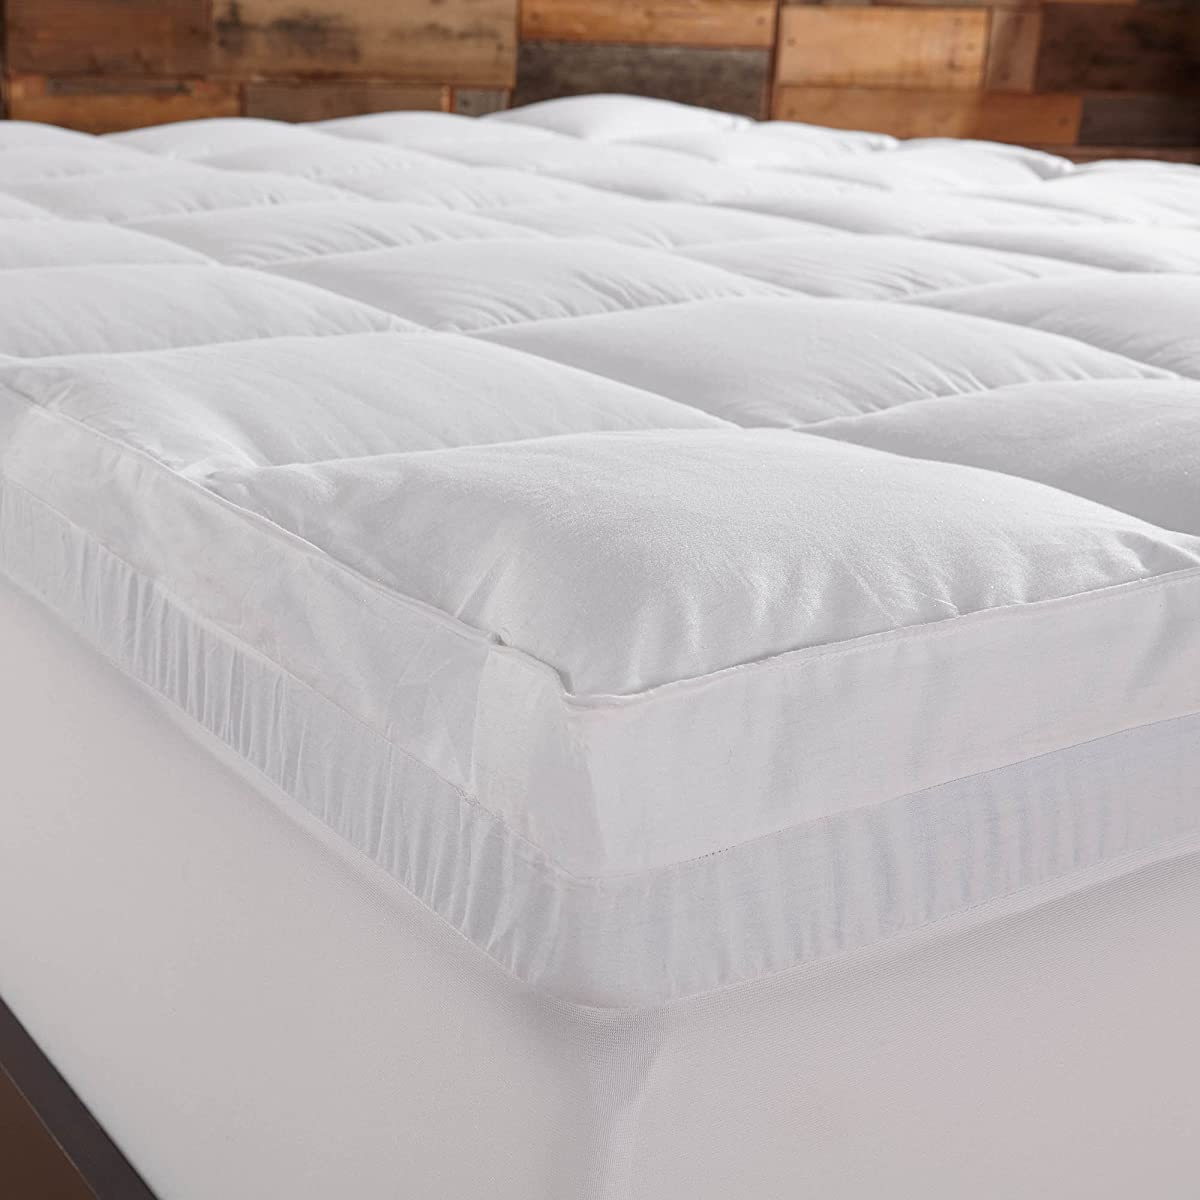 Sleep Innovations 4 Inch Dual Layer Mattress Topper Gel